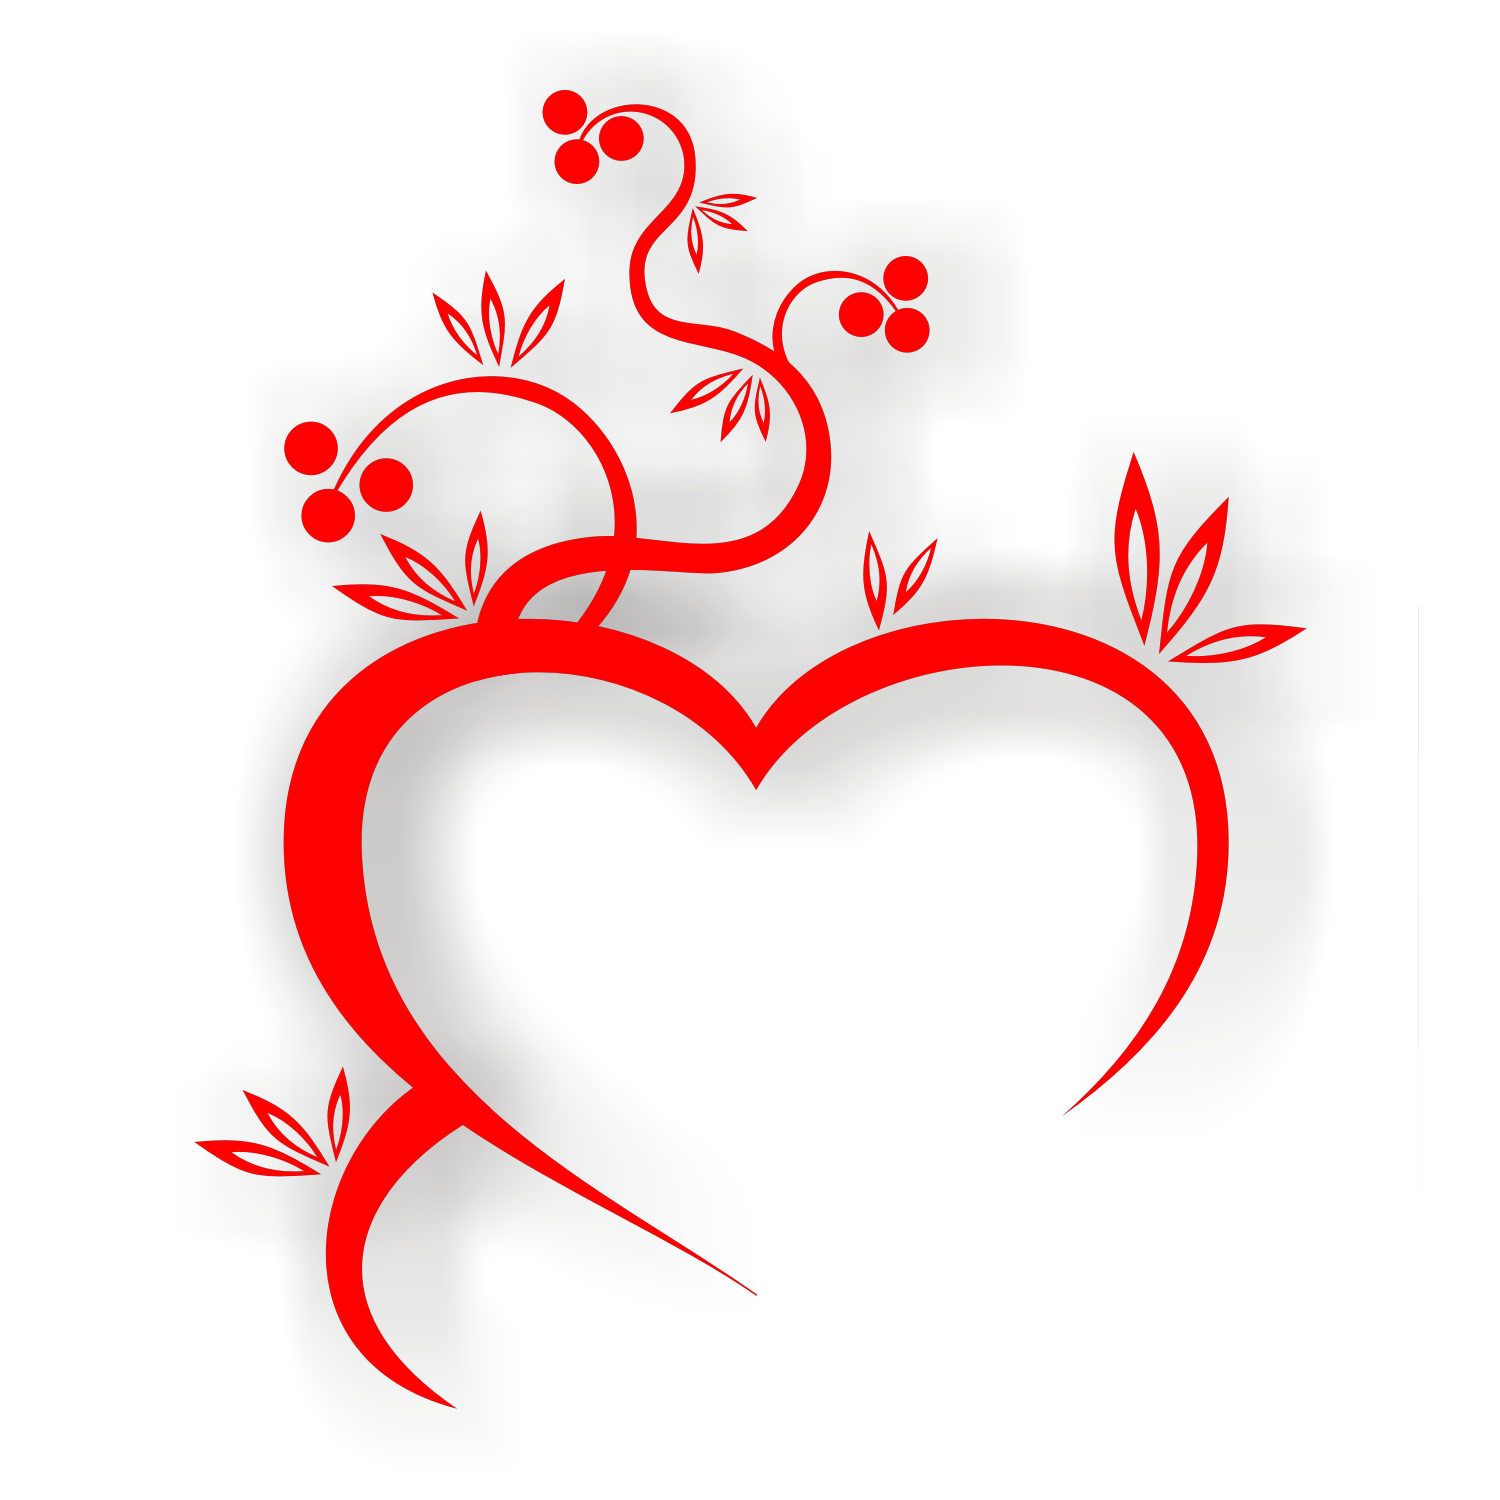 Free Love Vector Png, Download Free Clip Art, Free Clip Art.